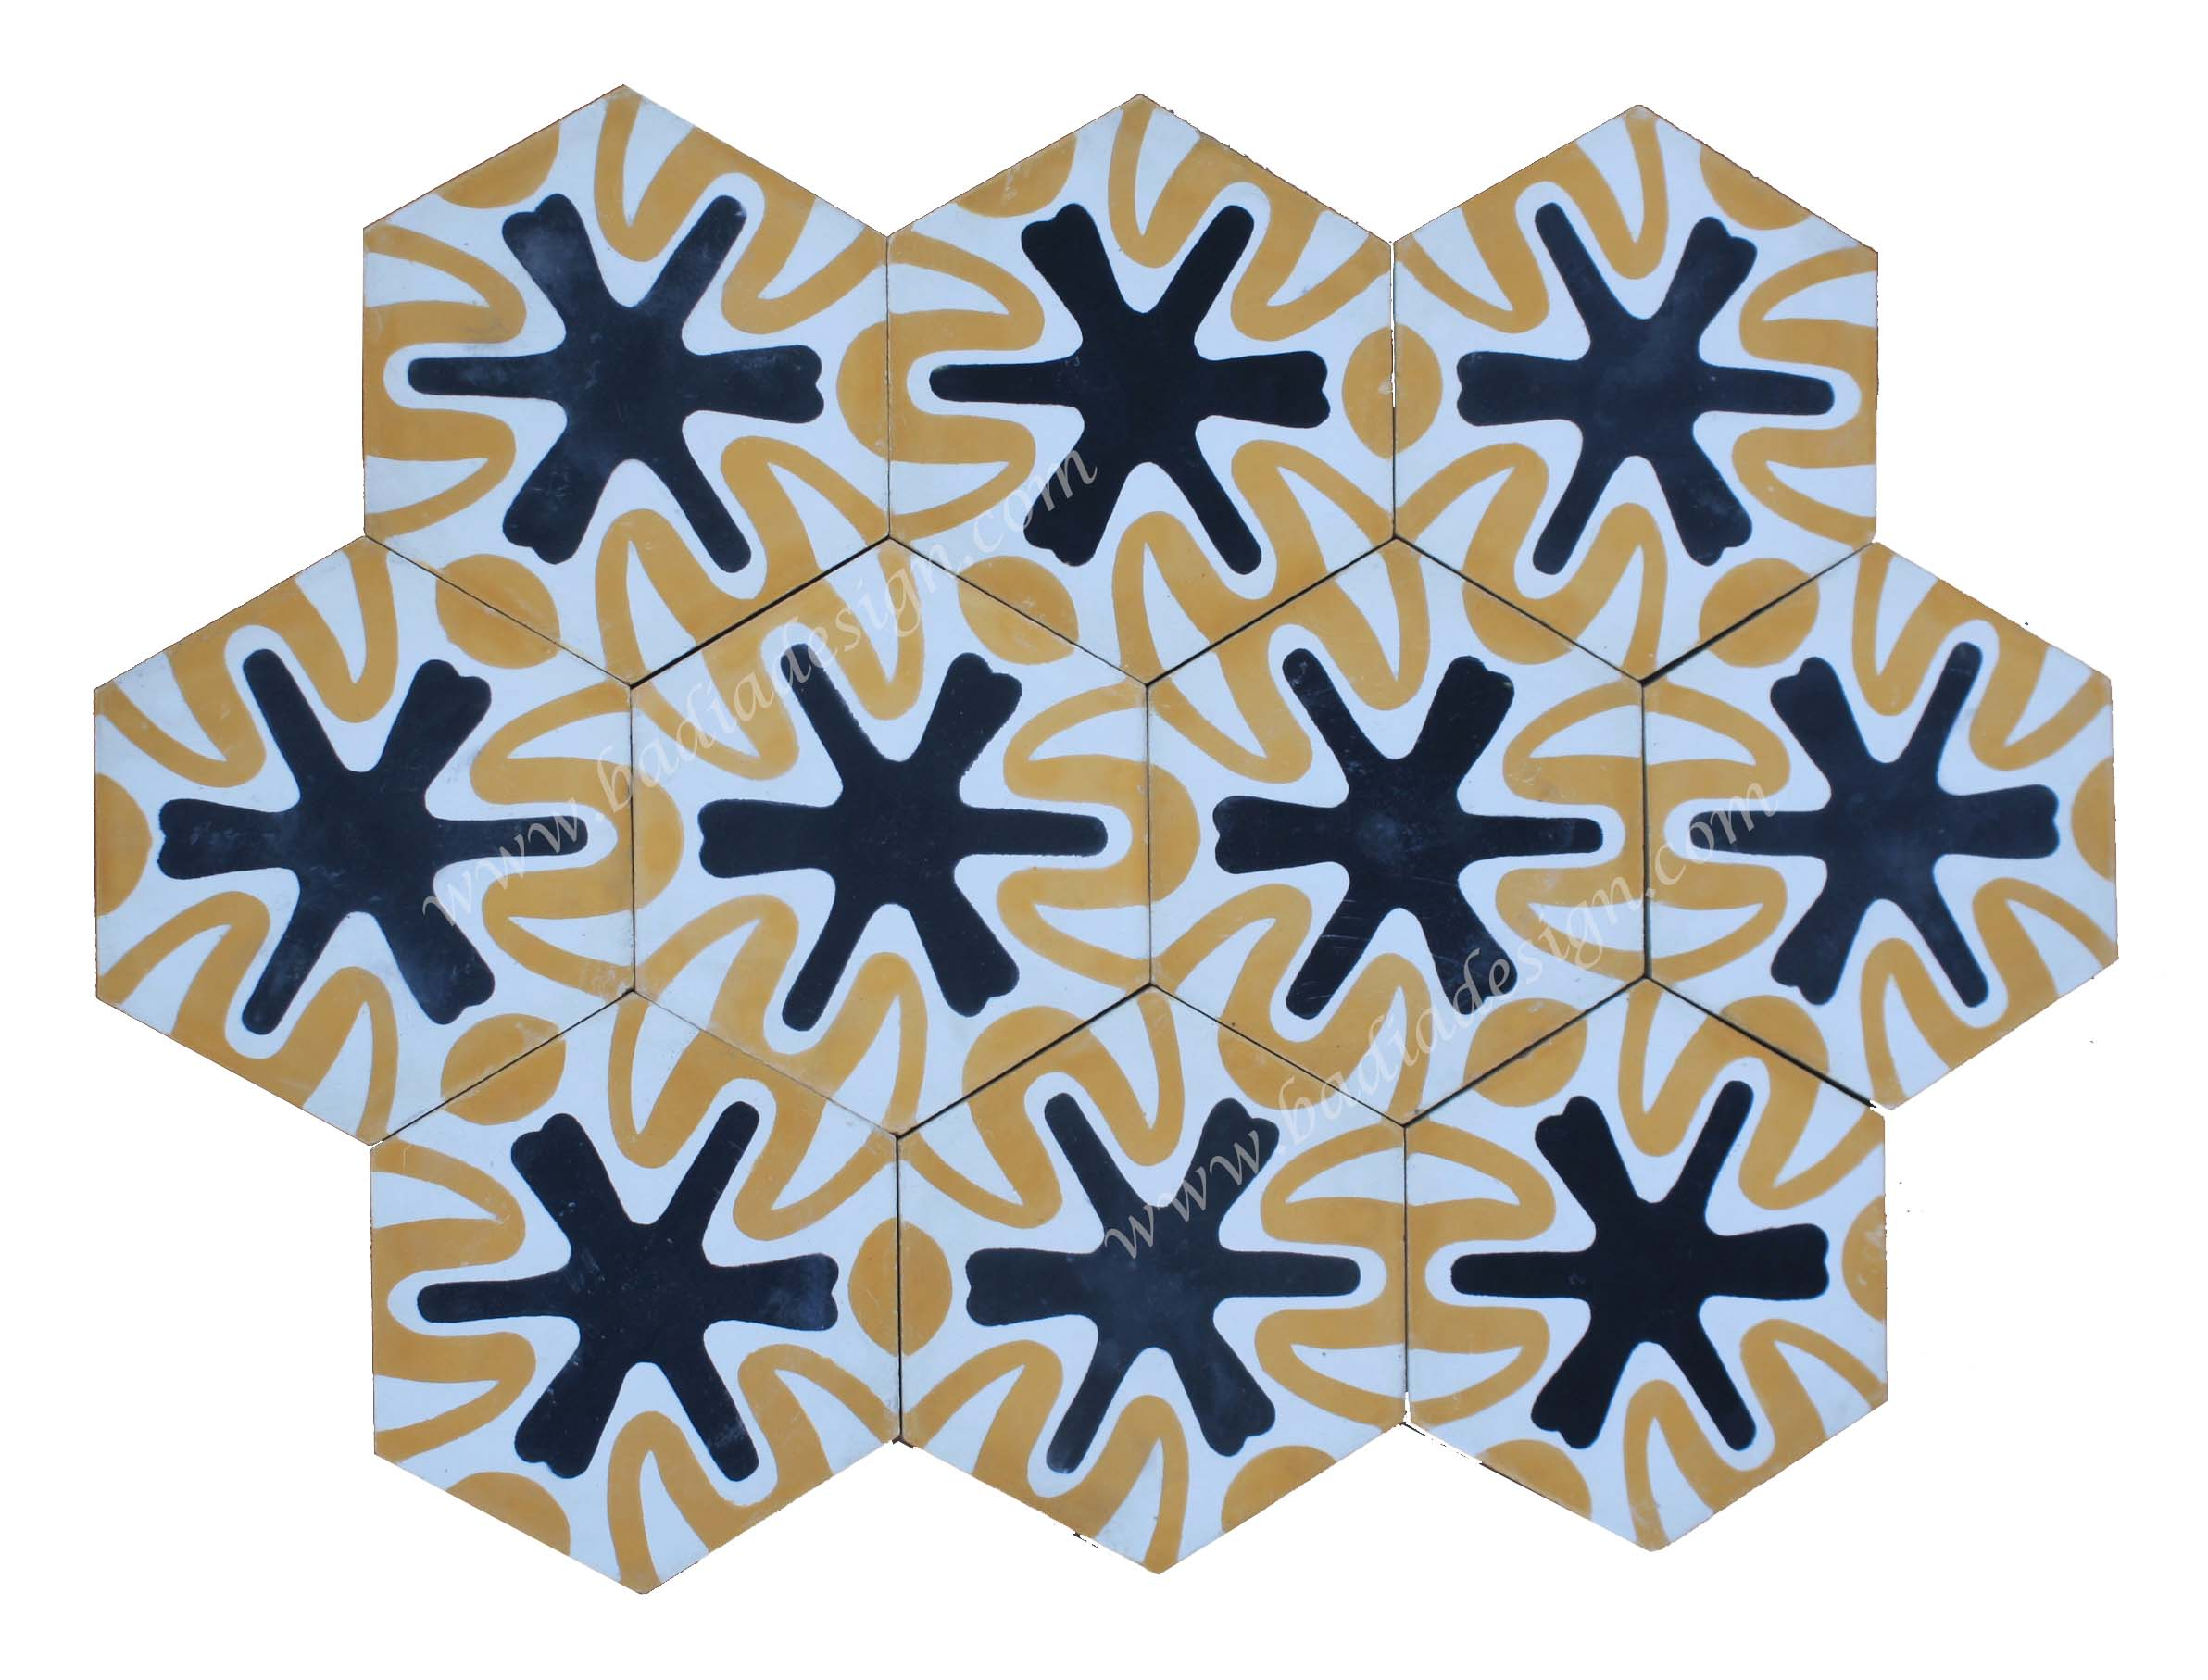 hexagon-shaped-spanish-cement-tile-ct098-1.jpg